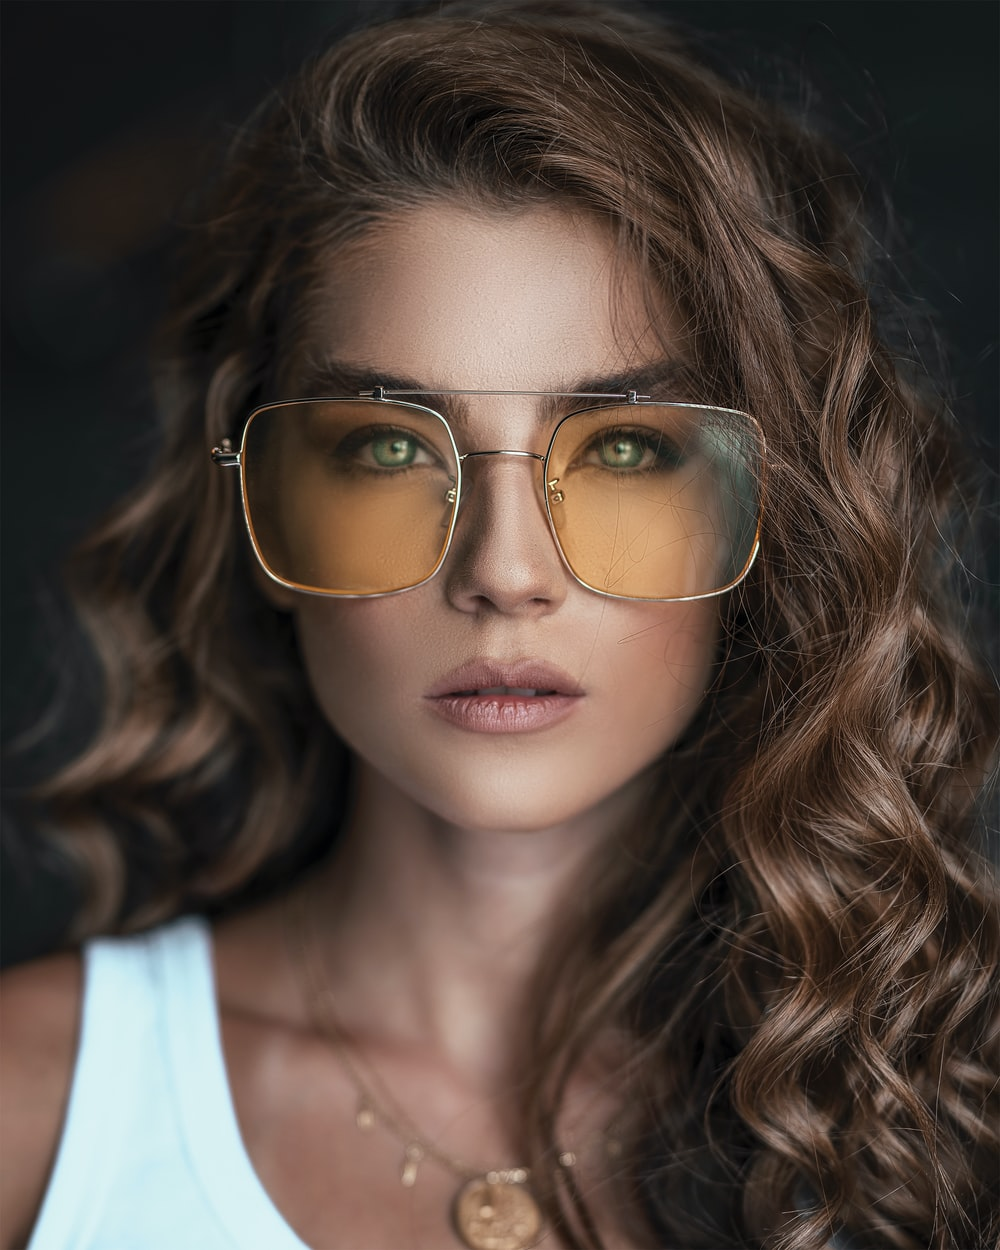 woman wearing brown sunglasses